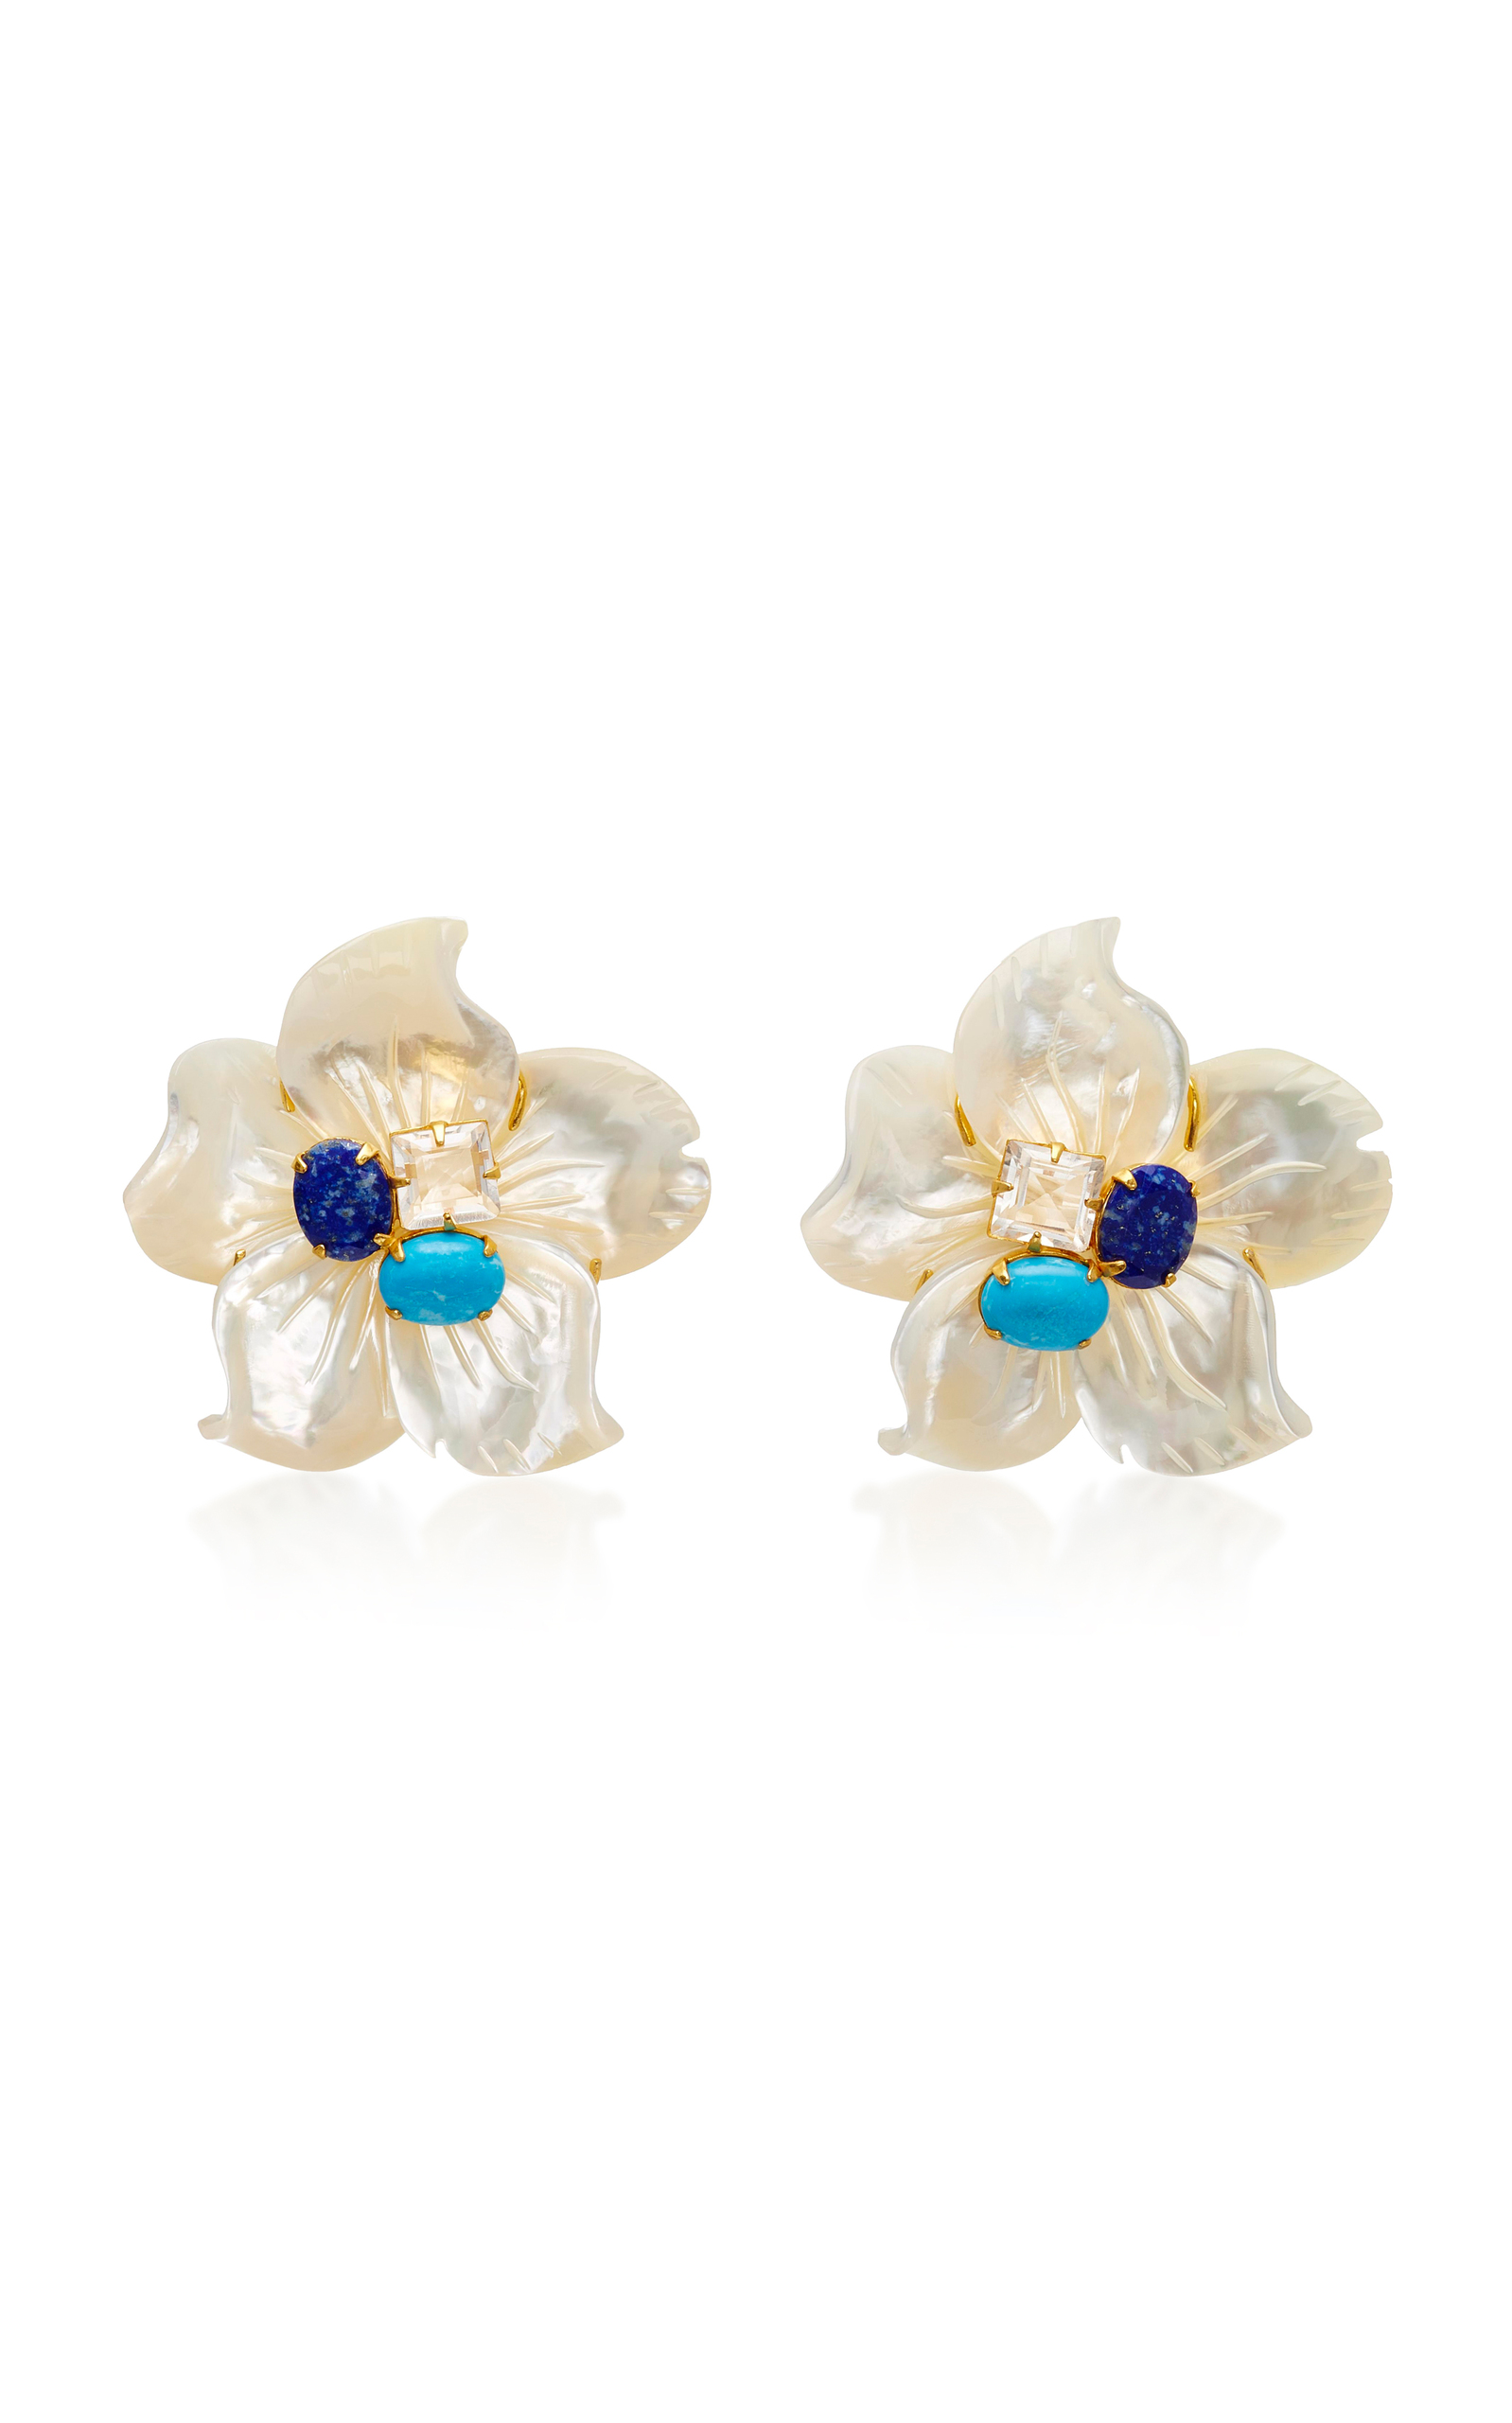 BOUNKIT 14K GOLD PLATED BRASS MOTHER OF PEARL LAPIS TURQUOISE CLEAR QUARTZ CLIP EARRINGS